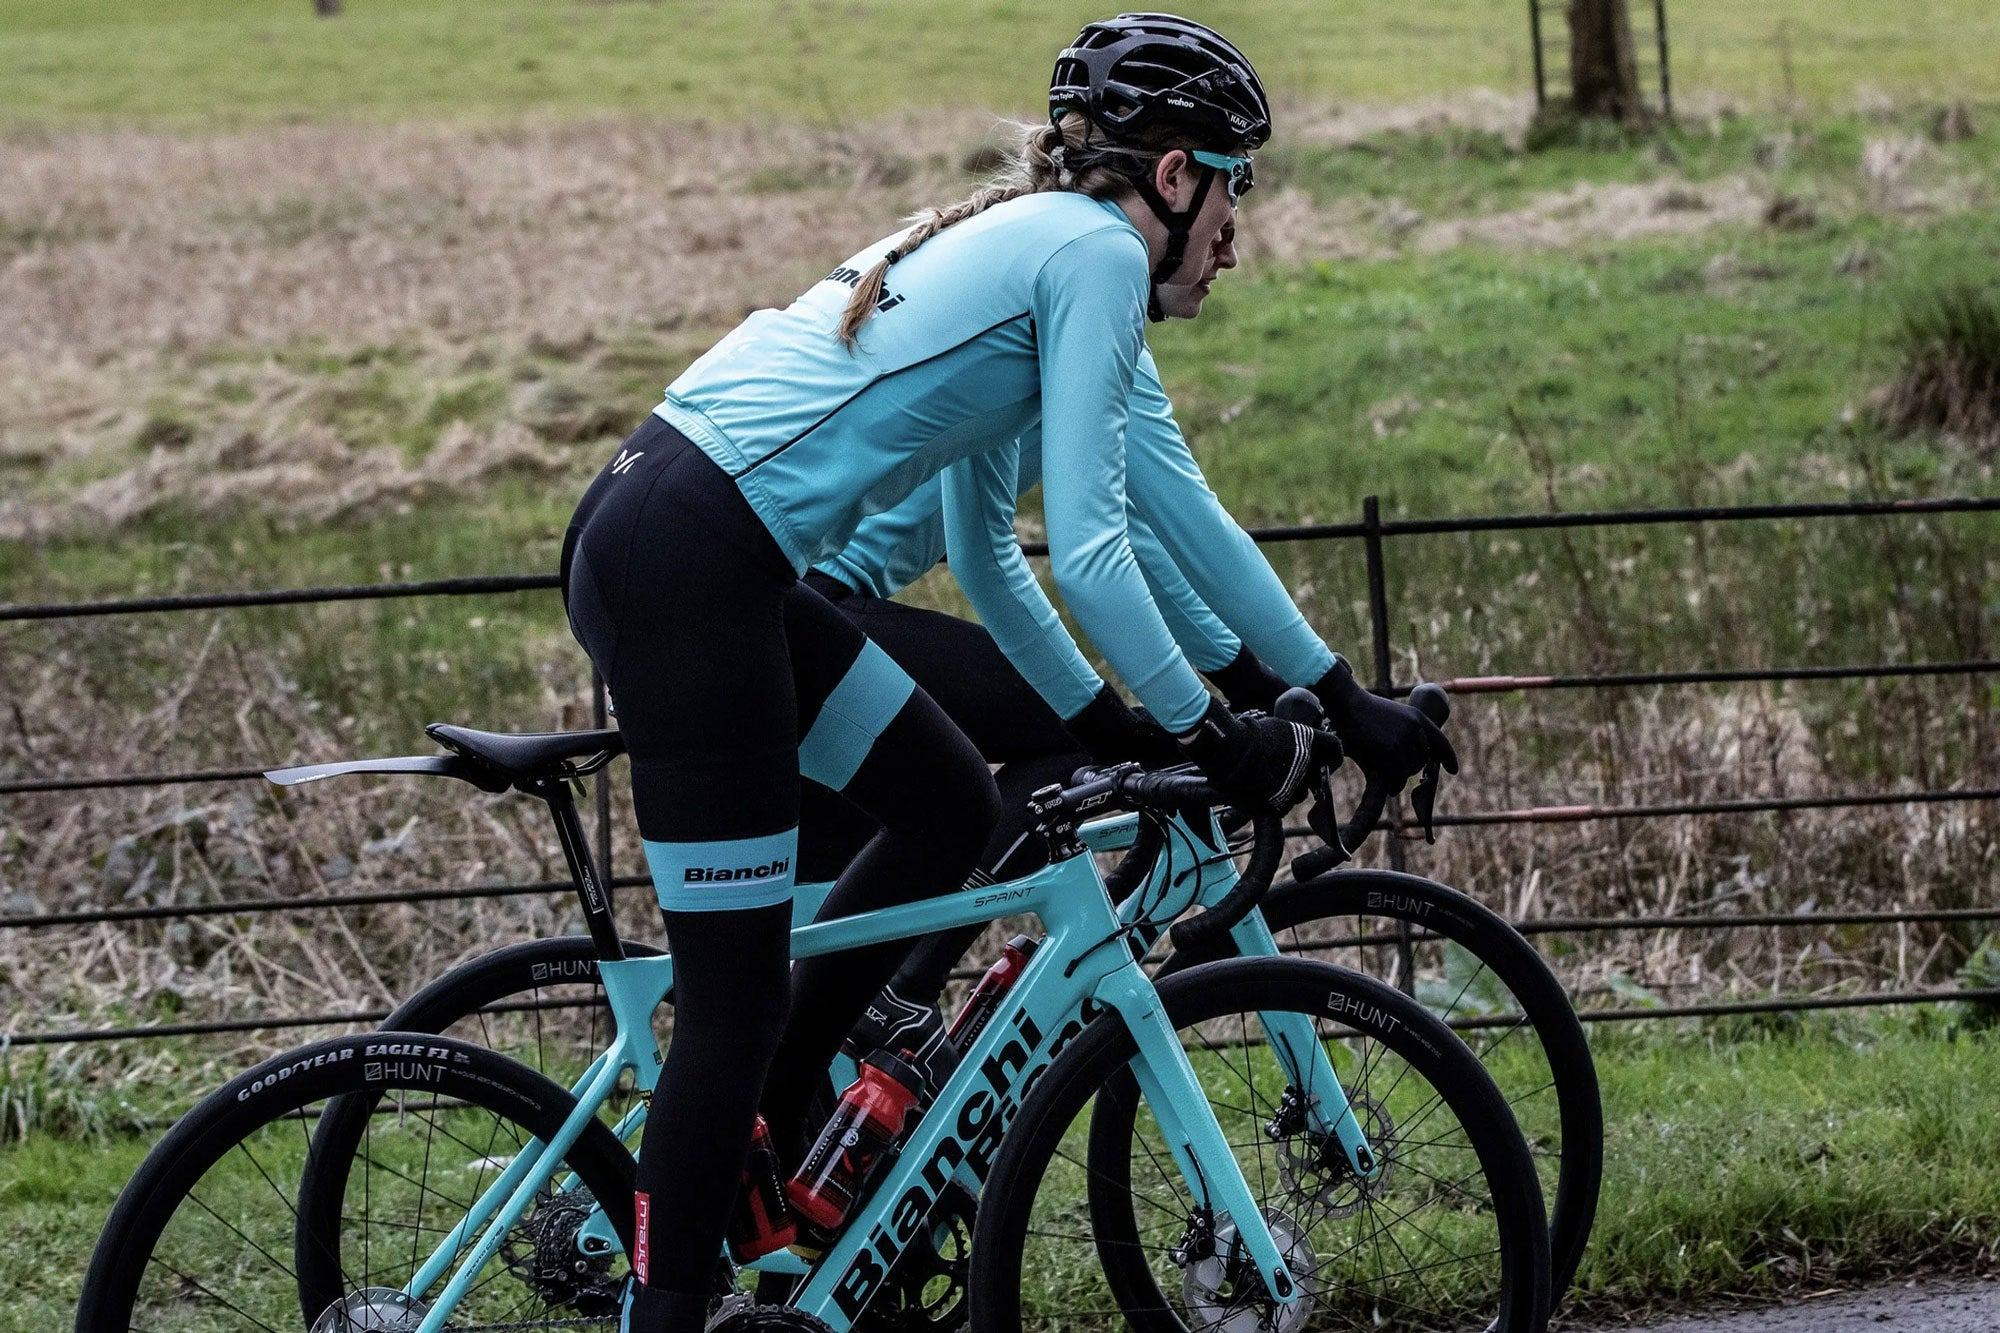 <h1>Bianchi Dama</h1><i>Bianchi Dama returning for a 2nd year as a Hunt supported team. Favouring the 50 Carbon Aero Disc to bring them to the podium.</i>